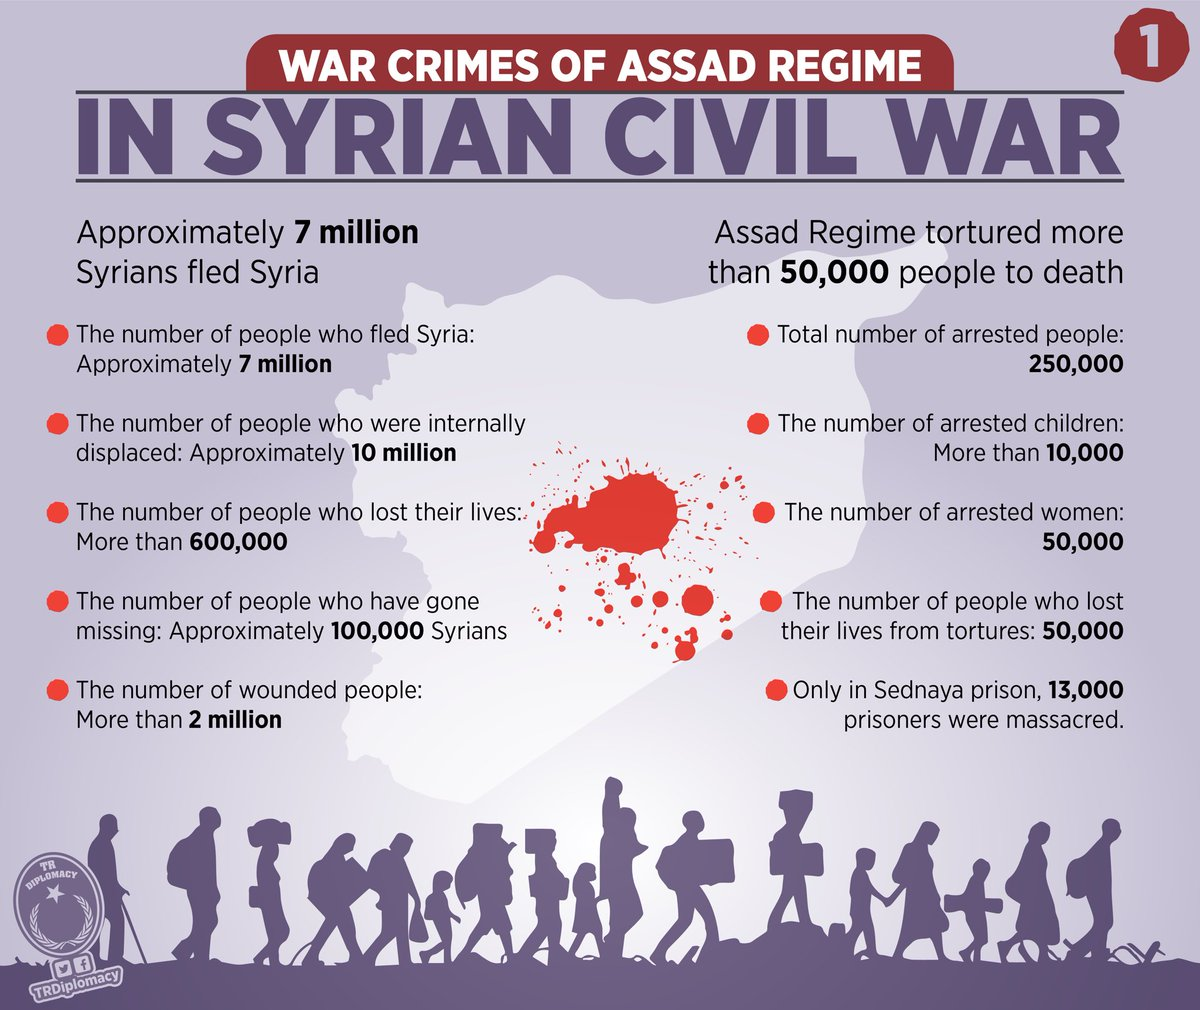 The war crimes committed by Assad Regime, massacring thousands with chemical bombs in Idlib, during the Syrian Civil War